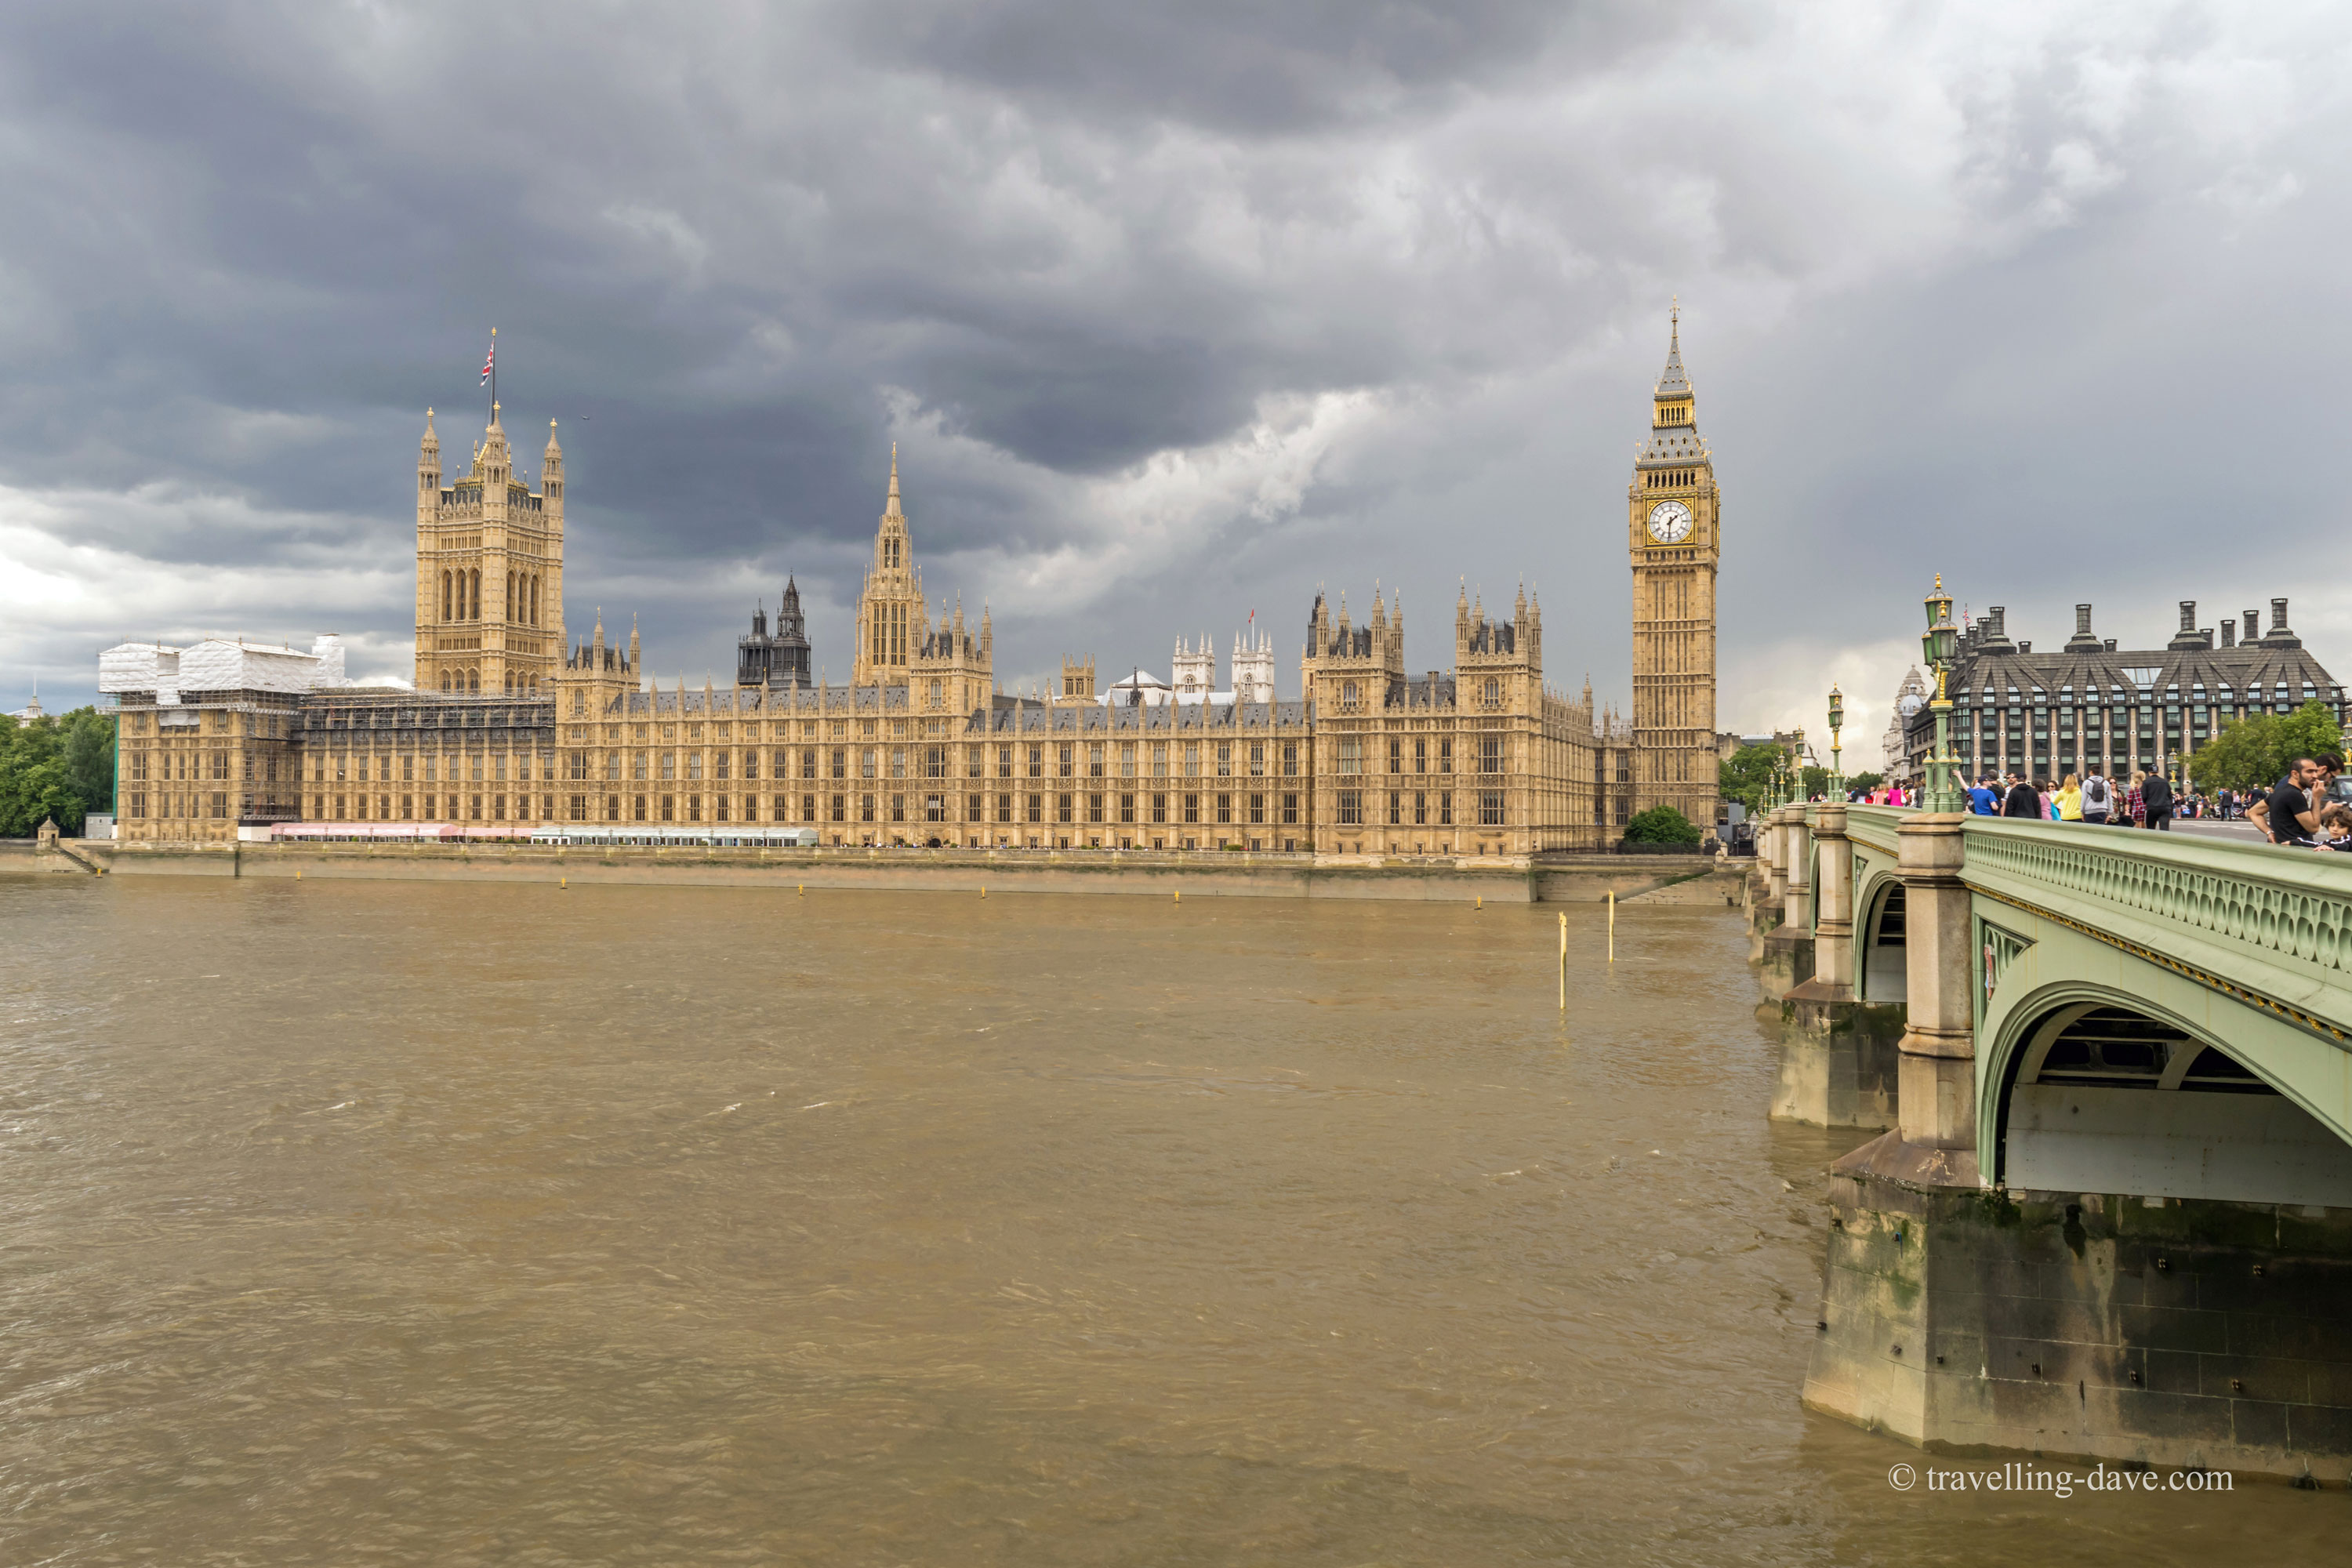 The Houses of Parliament and Elizabeth Tower in London